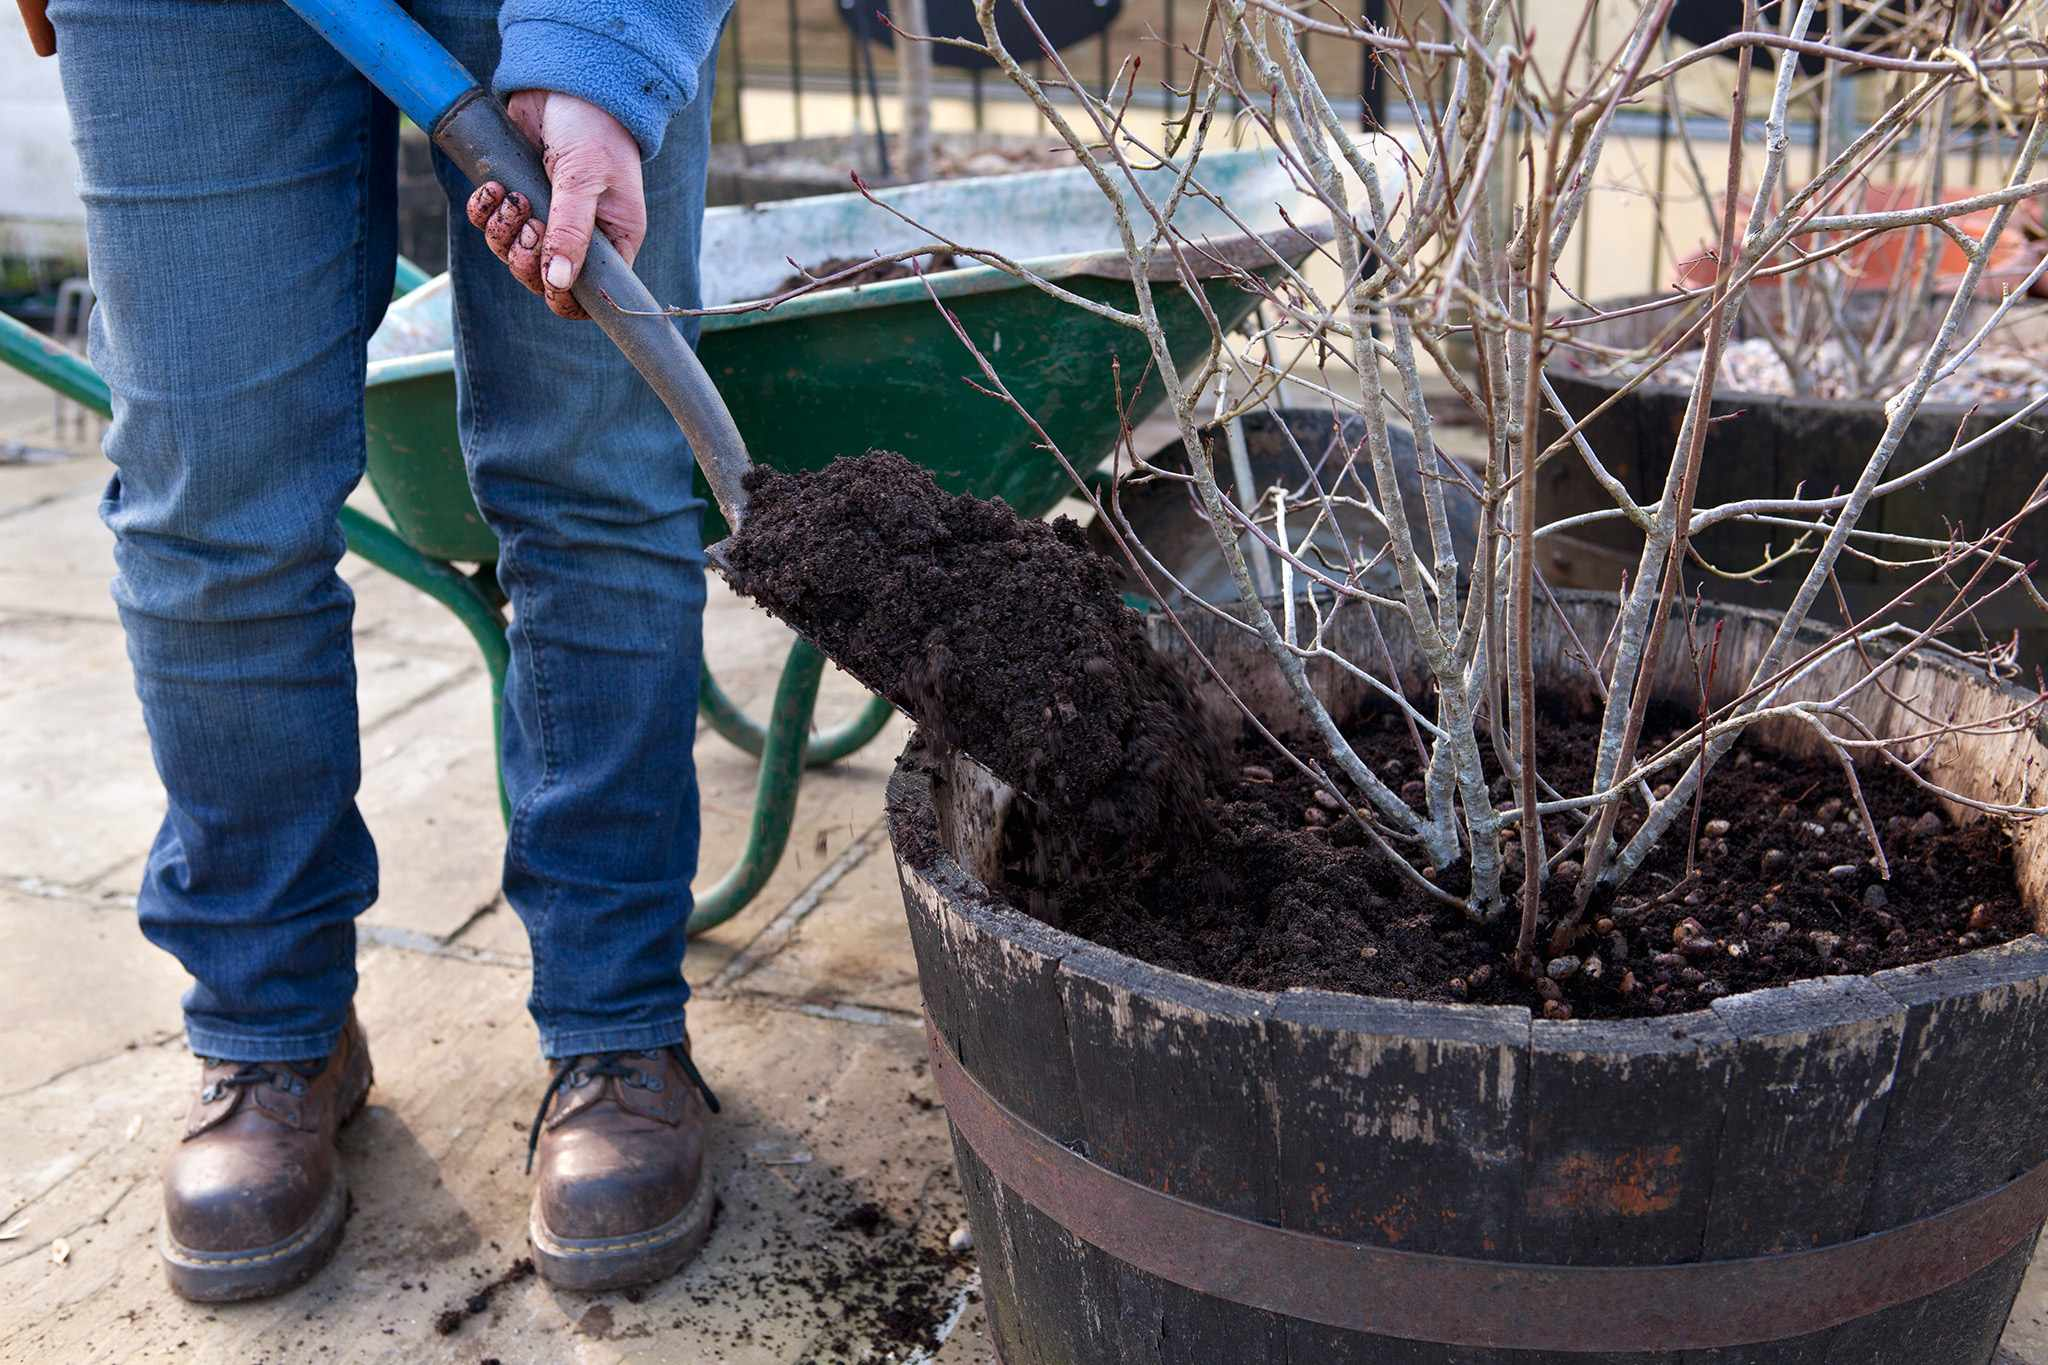 Refreshing the compost in pots